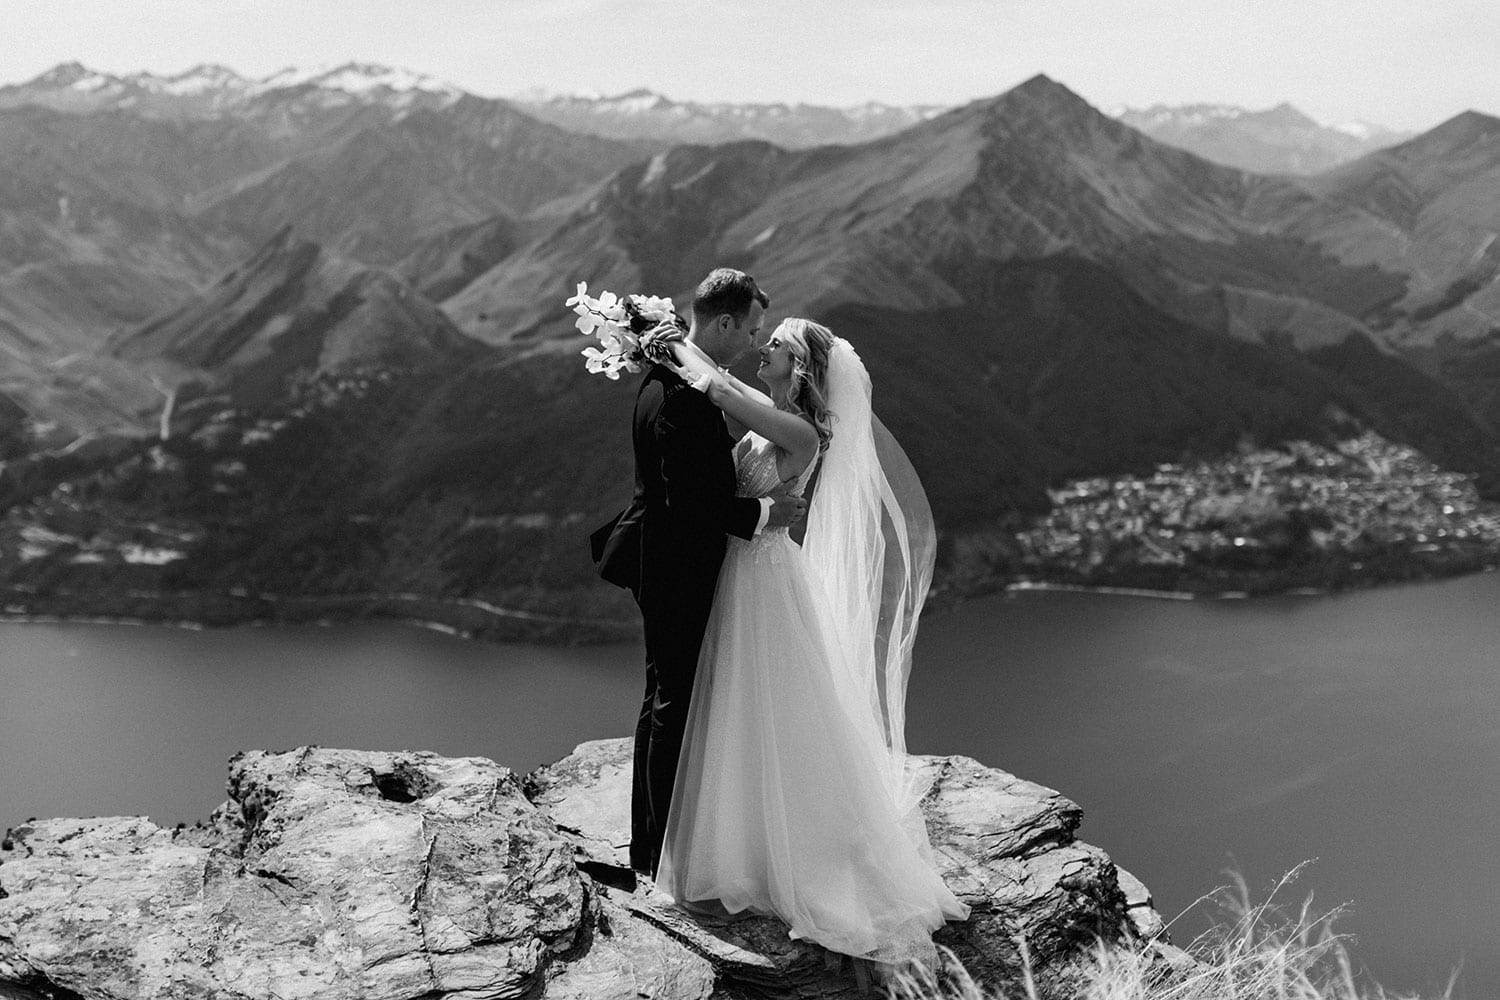 Vinka Design Features Real Weddings - bride in custom made Keiko gown from the Oriental affair collection with additional delicate dimensional flower lace added to the bodice and beading added to the skirt layers. Bride and groom on the cliffs with Lake Hays in the background - black and white